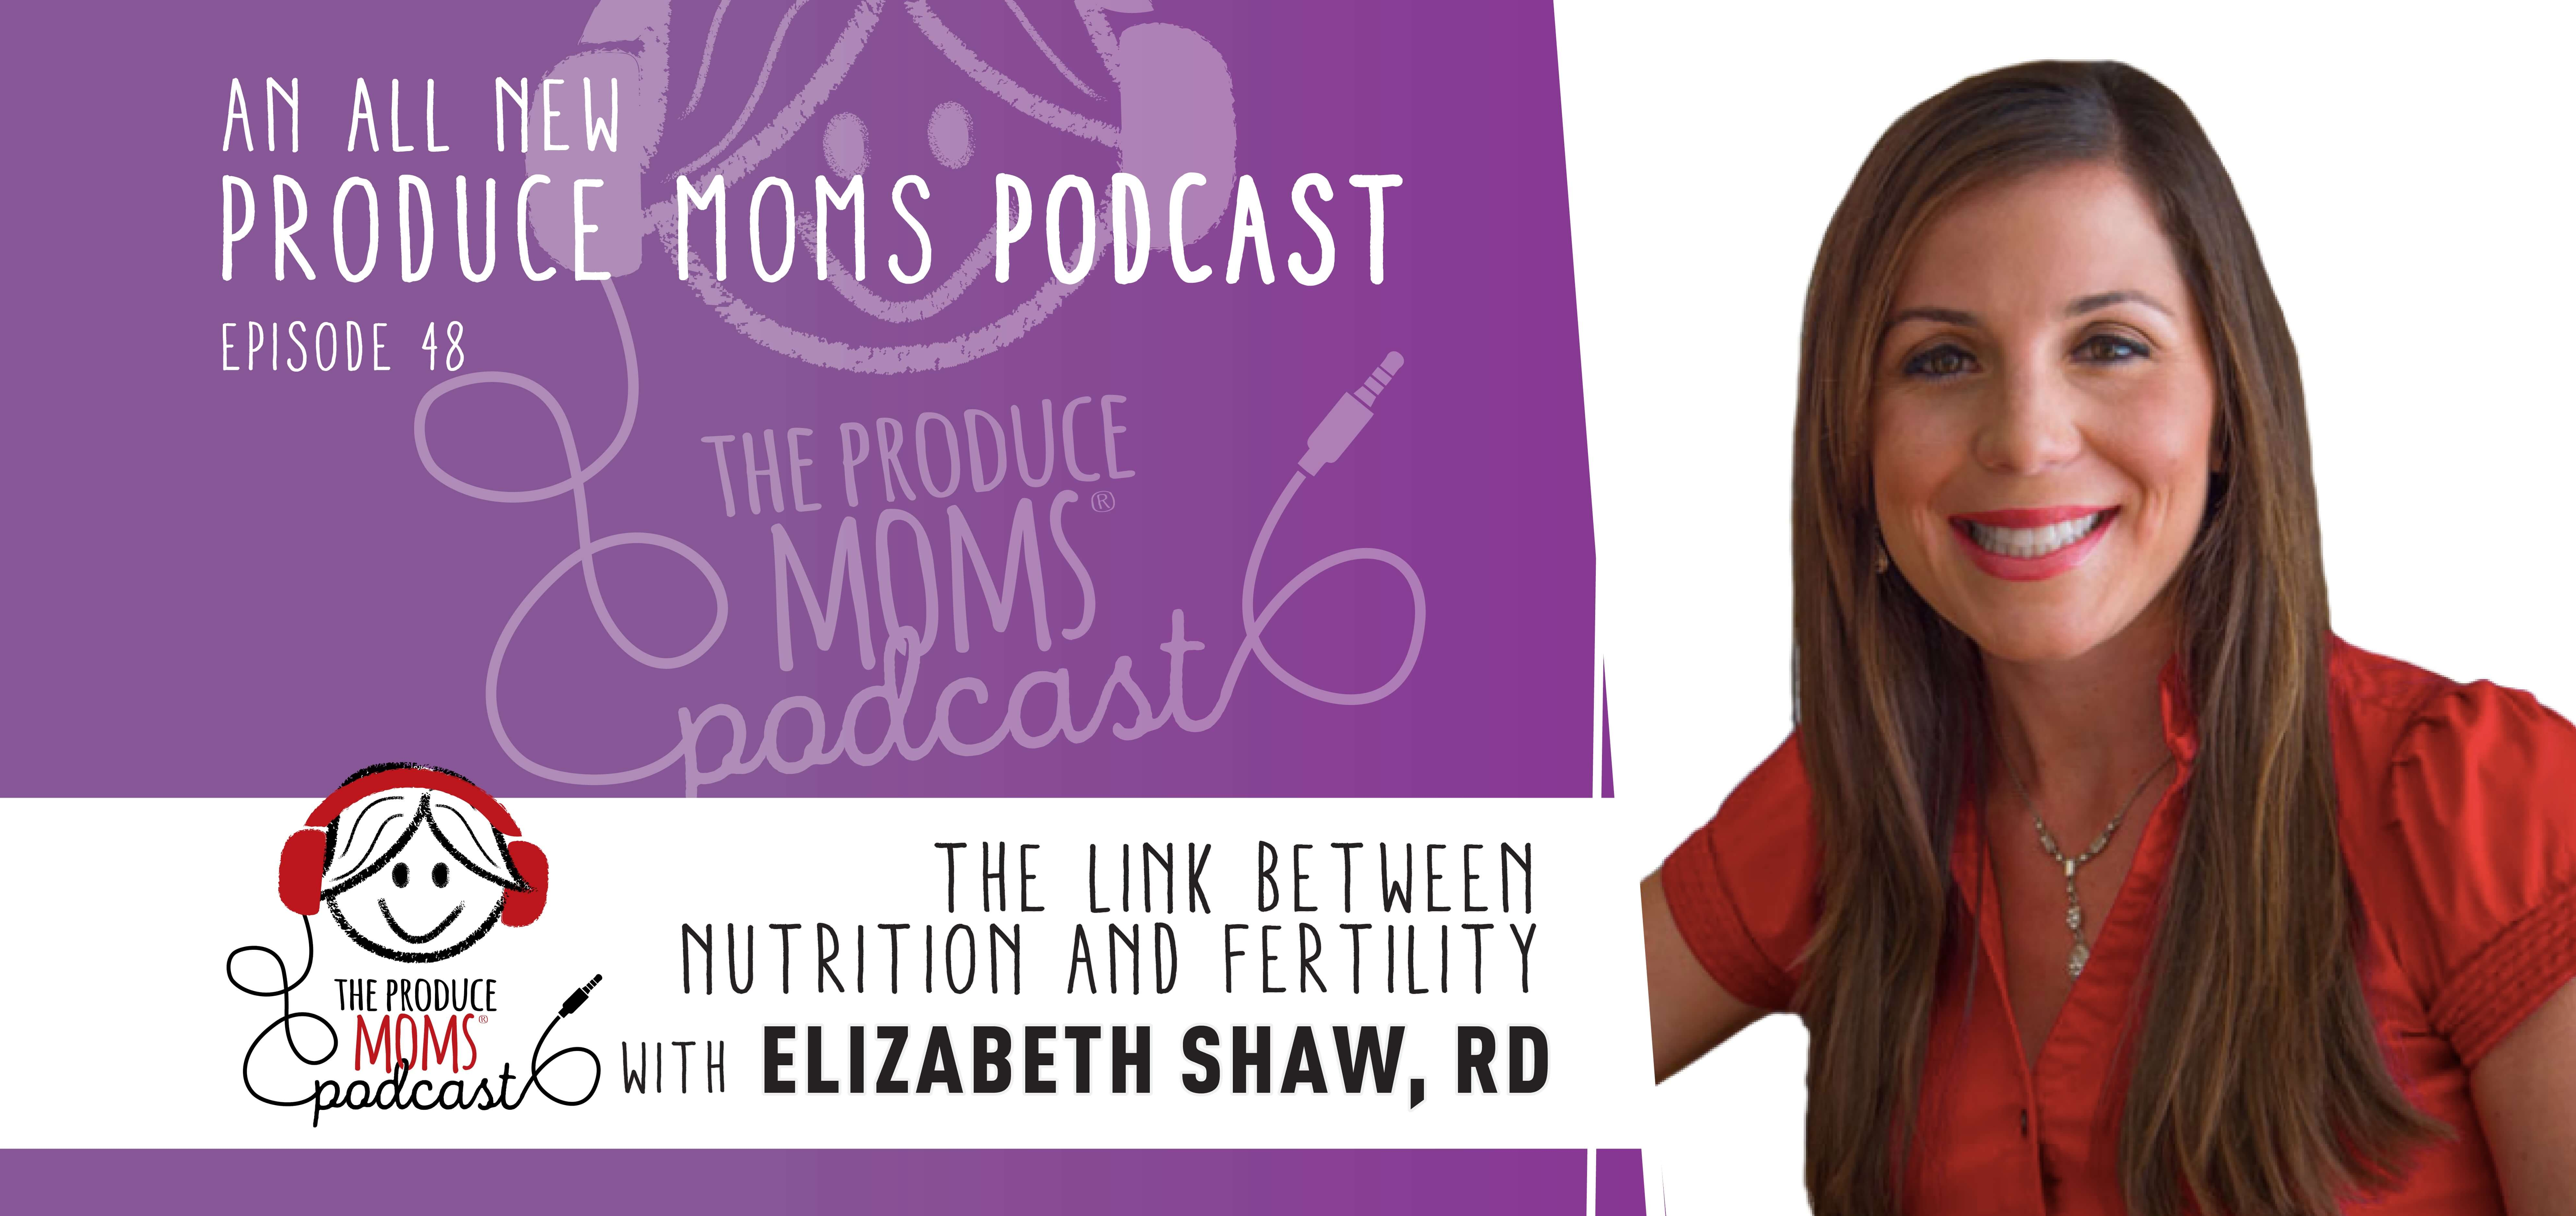 Episode 48: Nutrition and Fertility